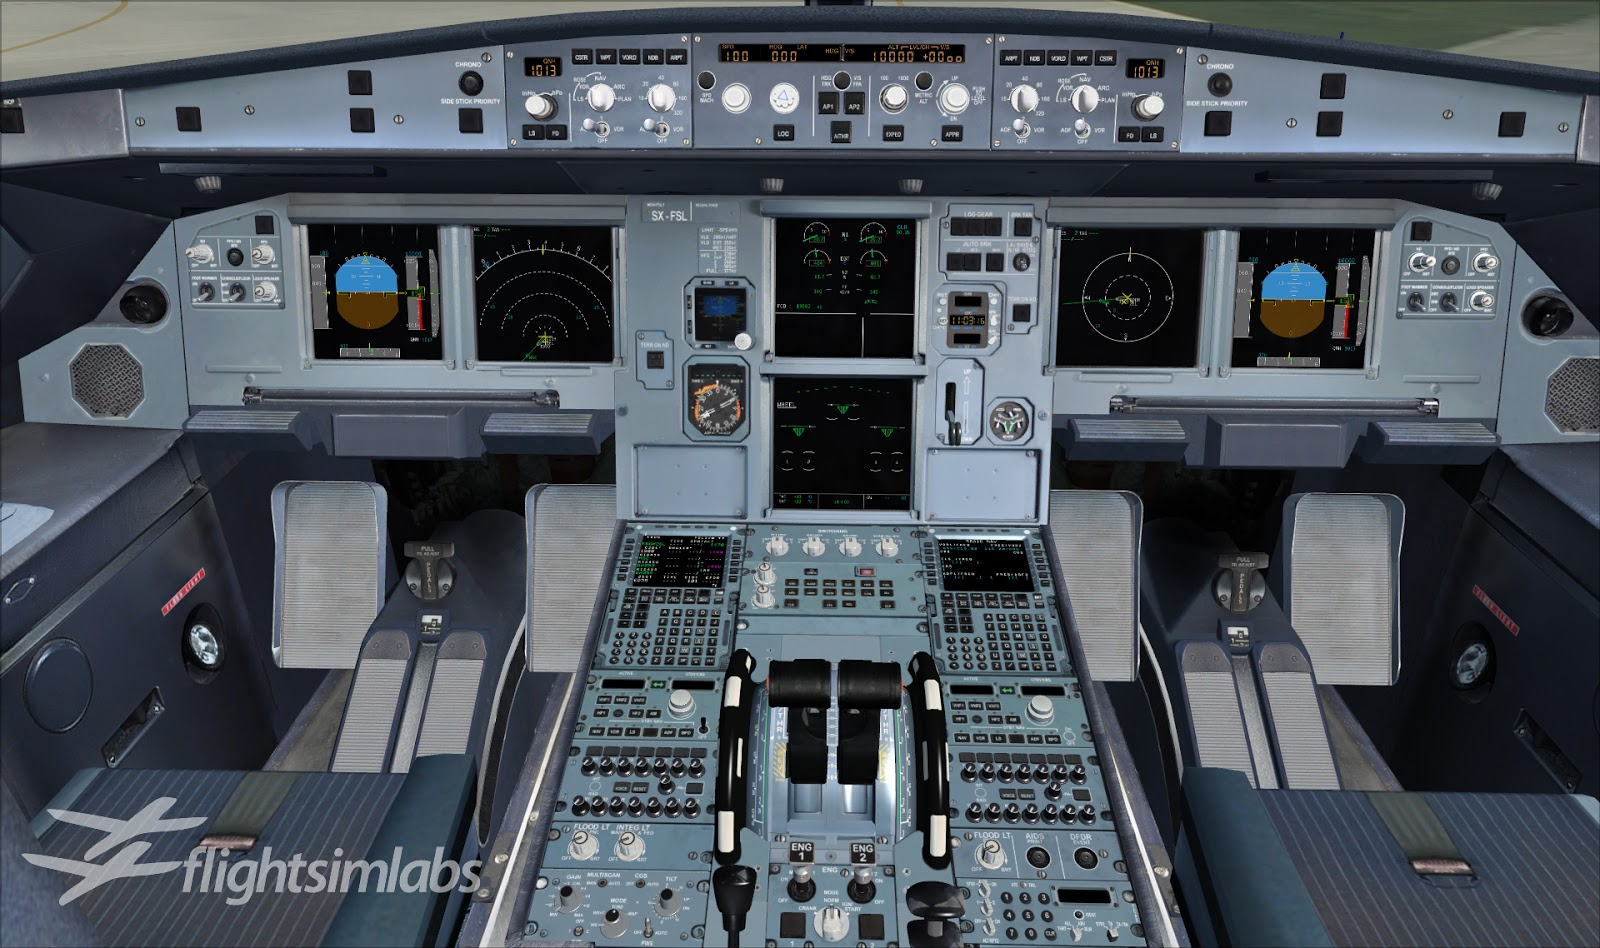 For Love Of Sim: FLIGHT SIM LABS AIRBUS A320